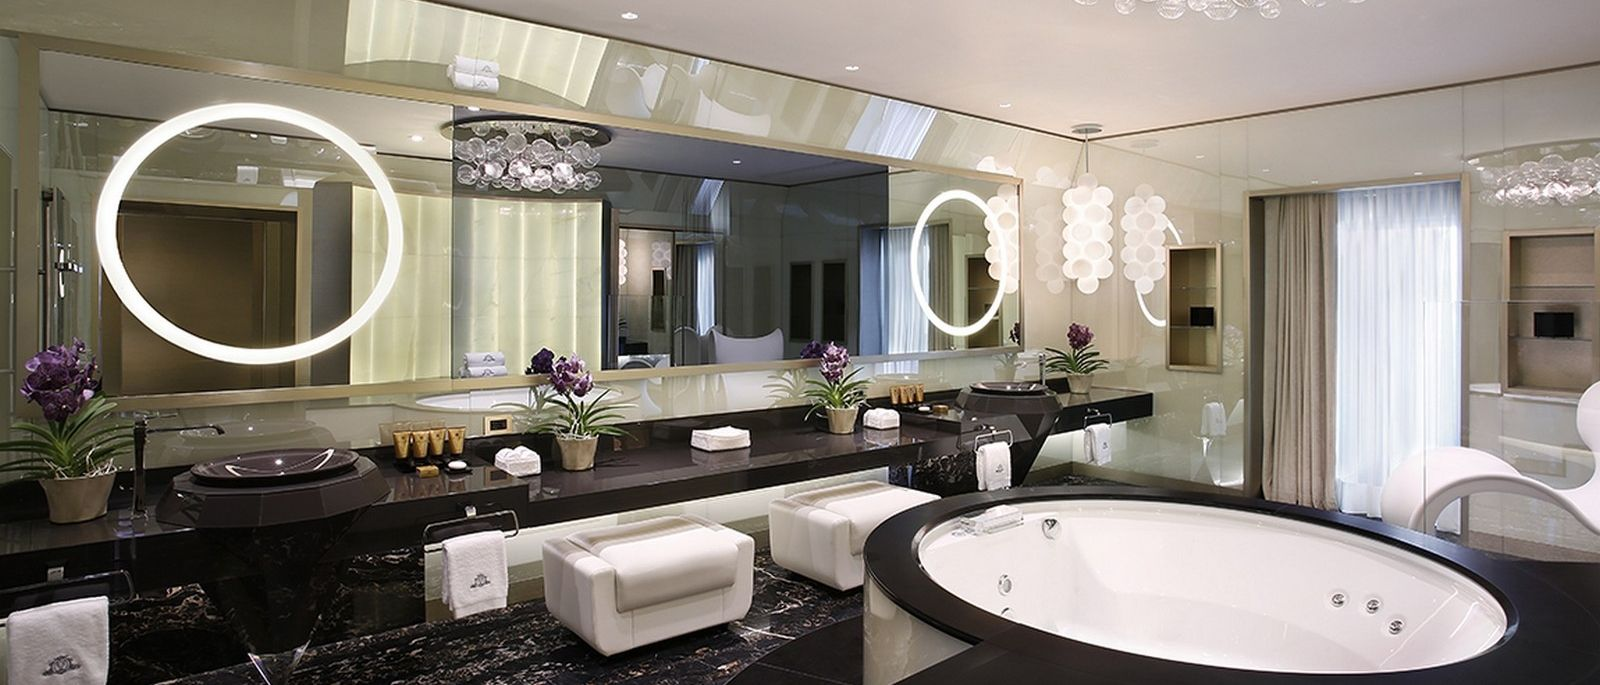 Katara Royal Suite Bathroom